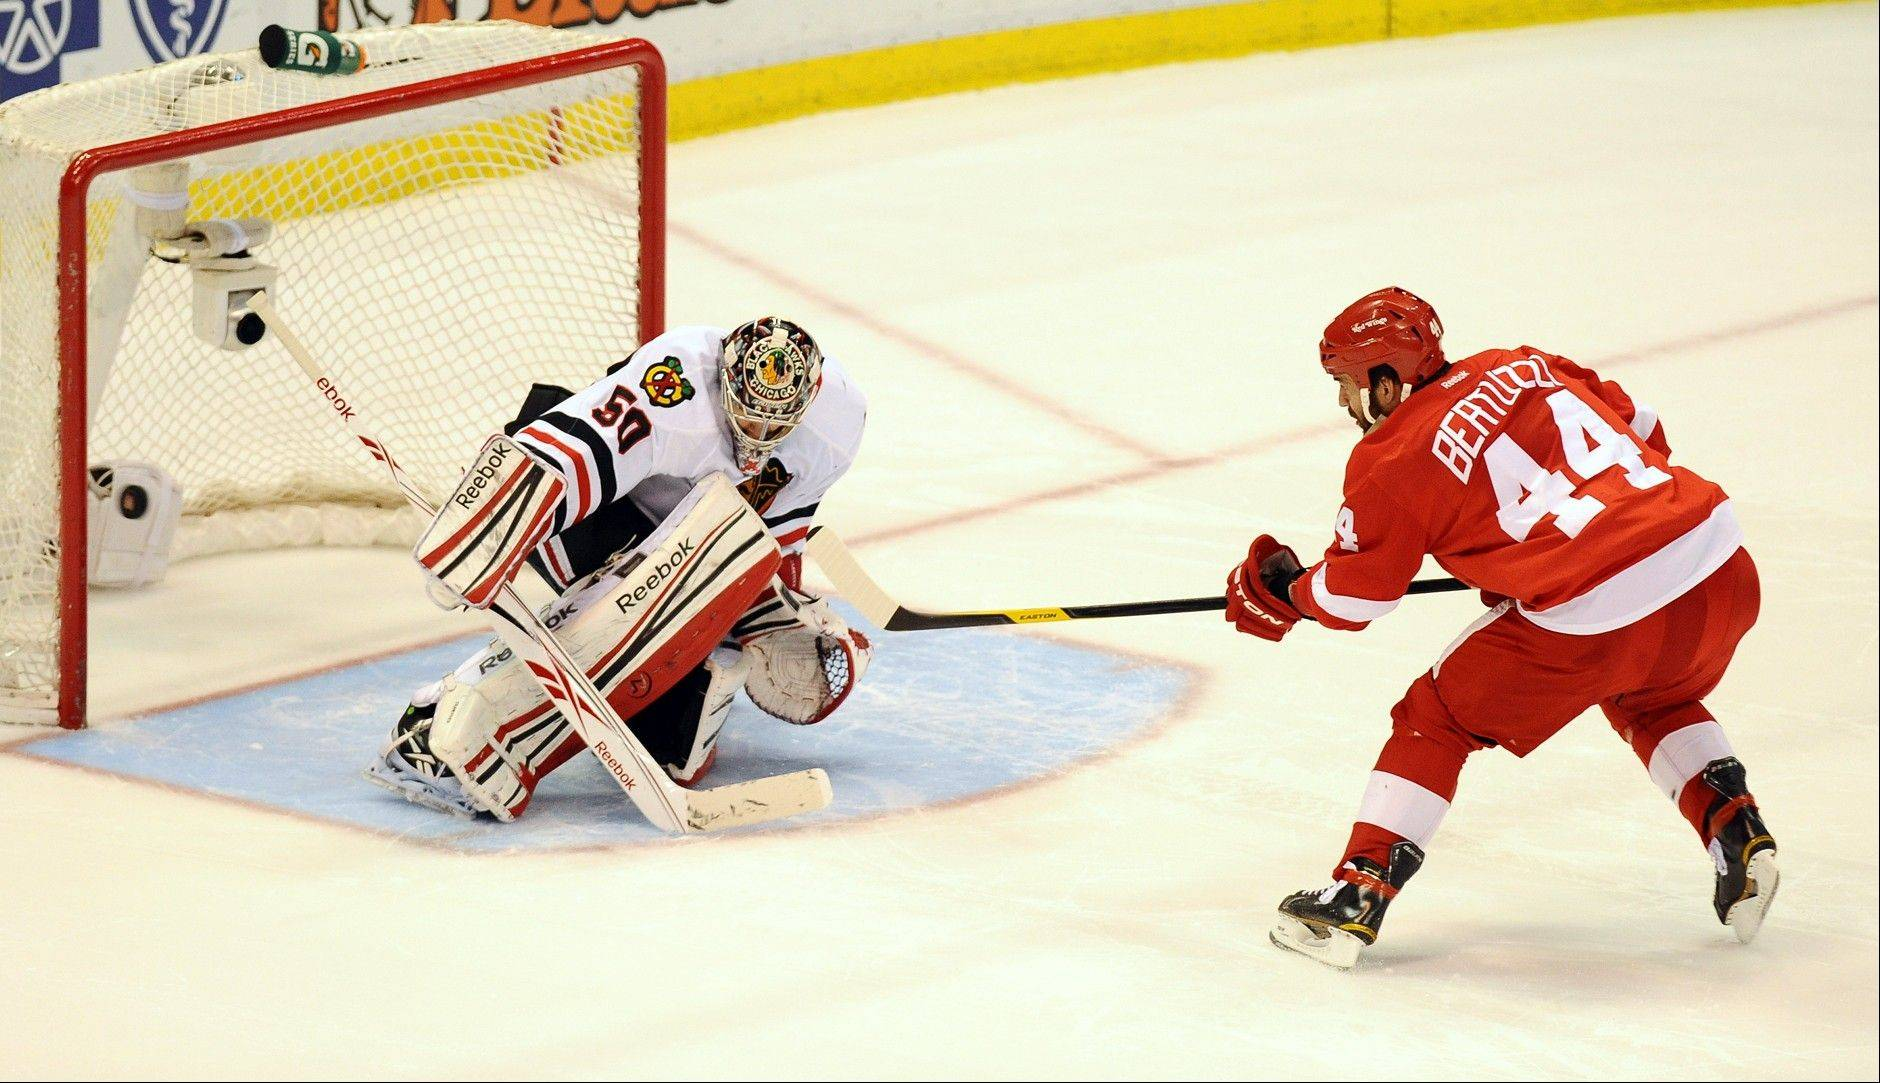 Detroit Red Wings right winger Todd Bertuzzi, right, is stymied by Blackhawks goalie Corey Crawford Saturday in an overtime shootout. The Blackhawks won 3-2 in a shootout.